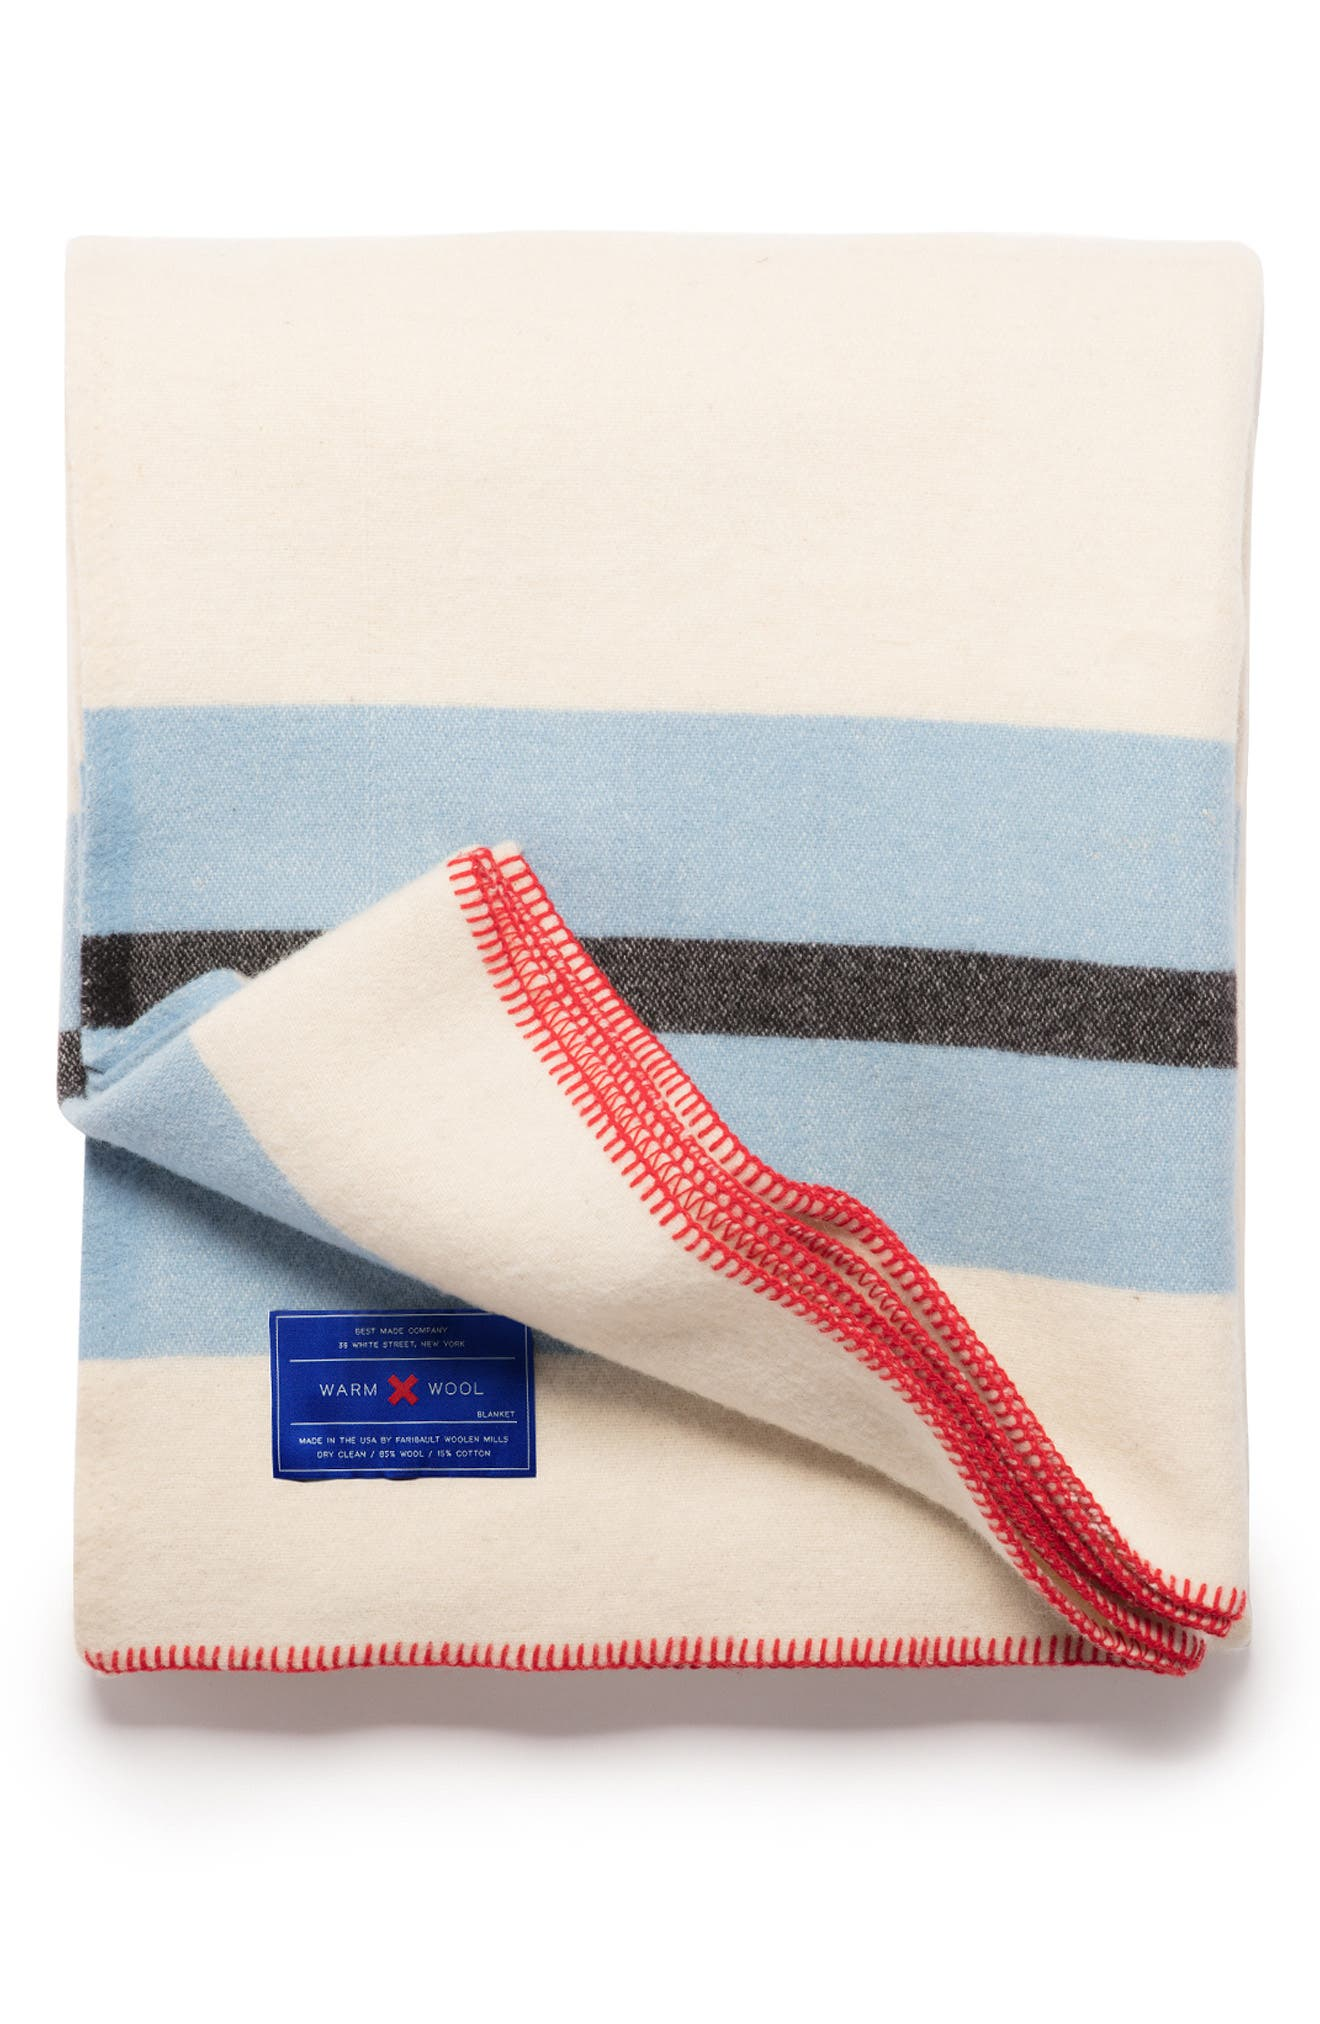 The Warm Wool Blend Blanket,                             Main thumbnail 1, color,                             WHITE/ BLUE/ RED